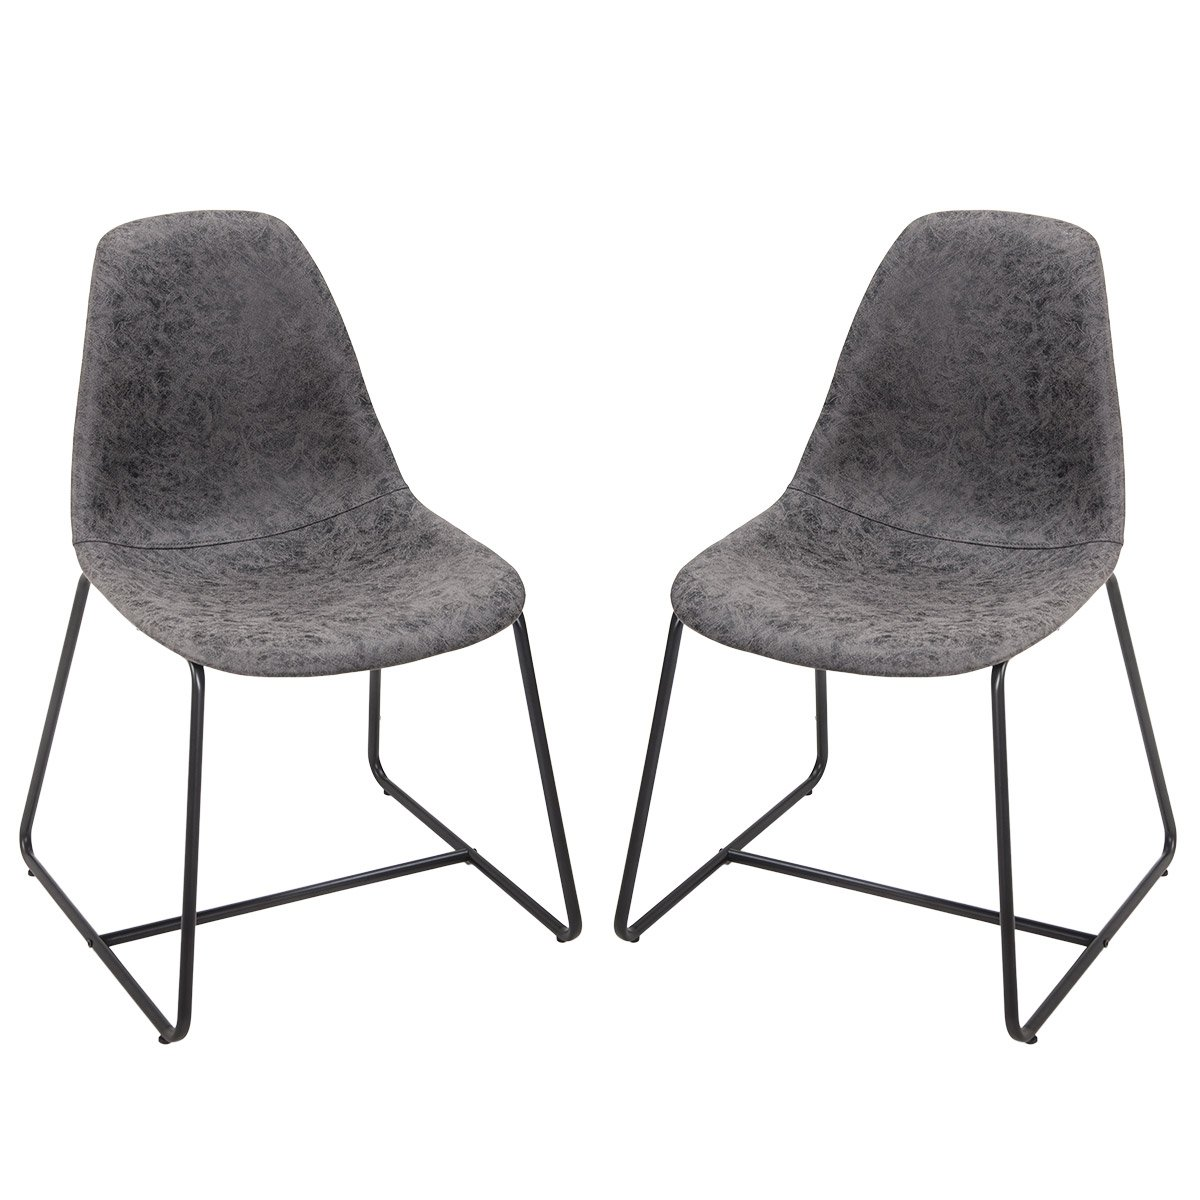 Harper&Bright Designs Eames Style Dining Side Chairs Vintage PU Leather with Metal Legs and Padded Seat & Back Set of 2 (Grey)